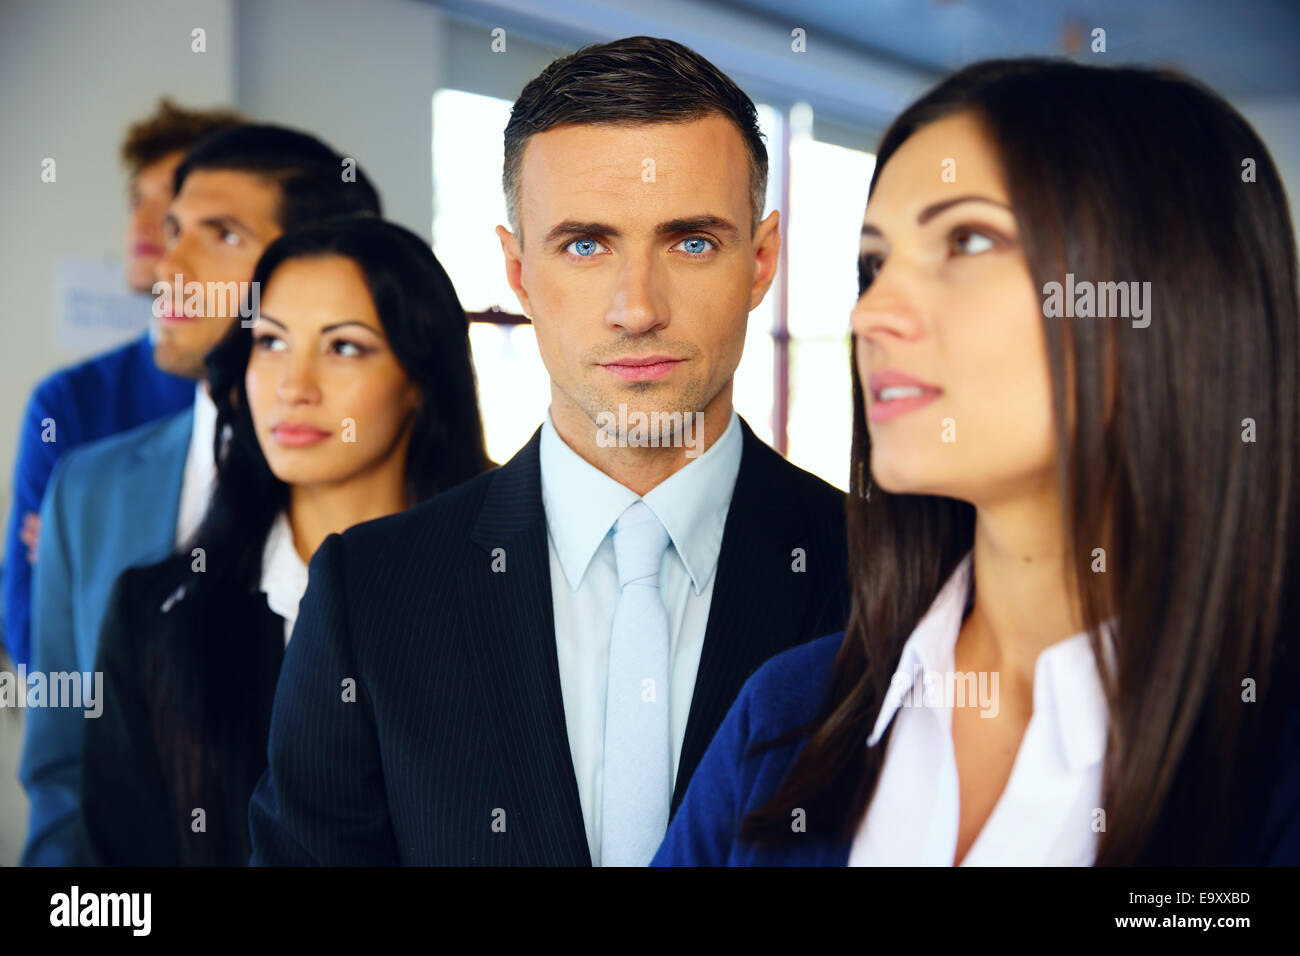 Group of a young serious businesspeople standing in row at office - Stock Image